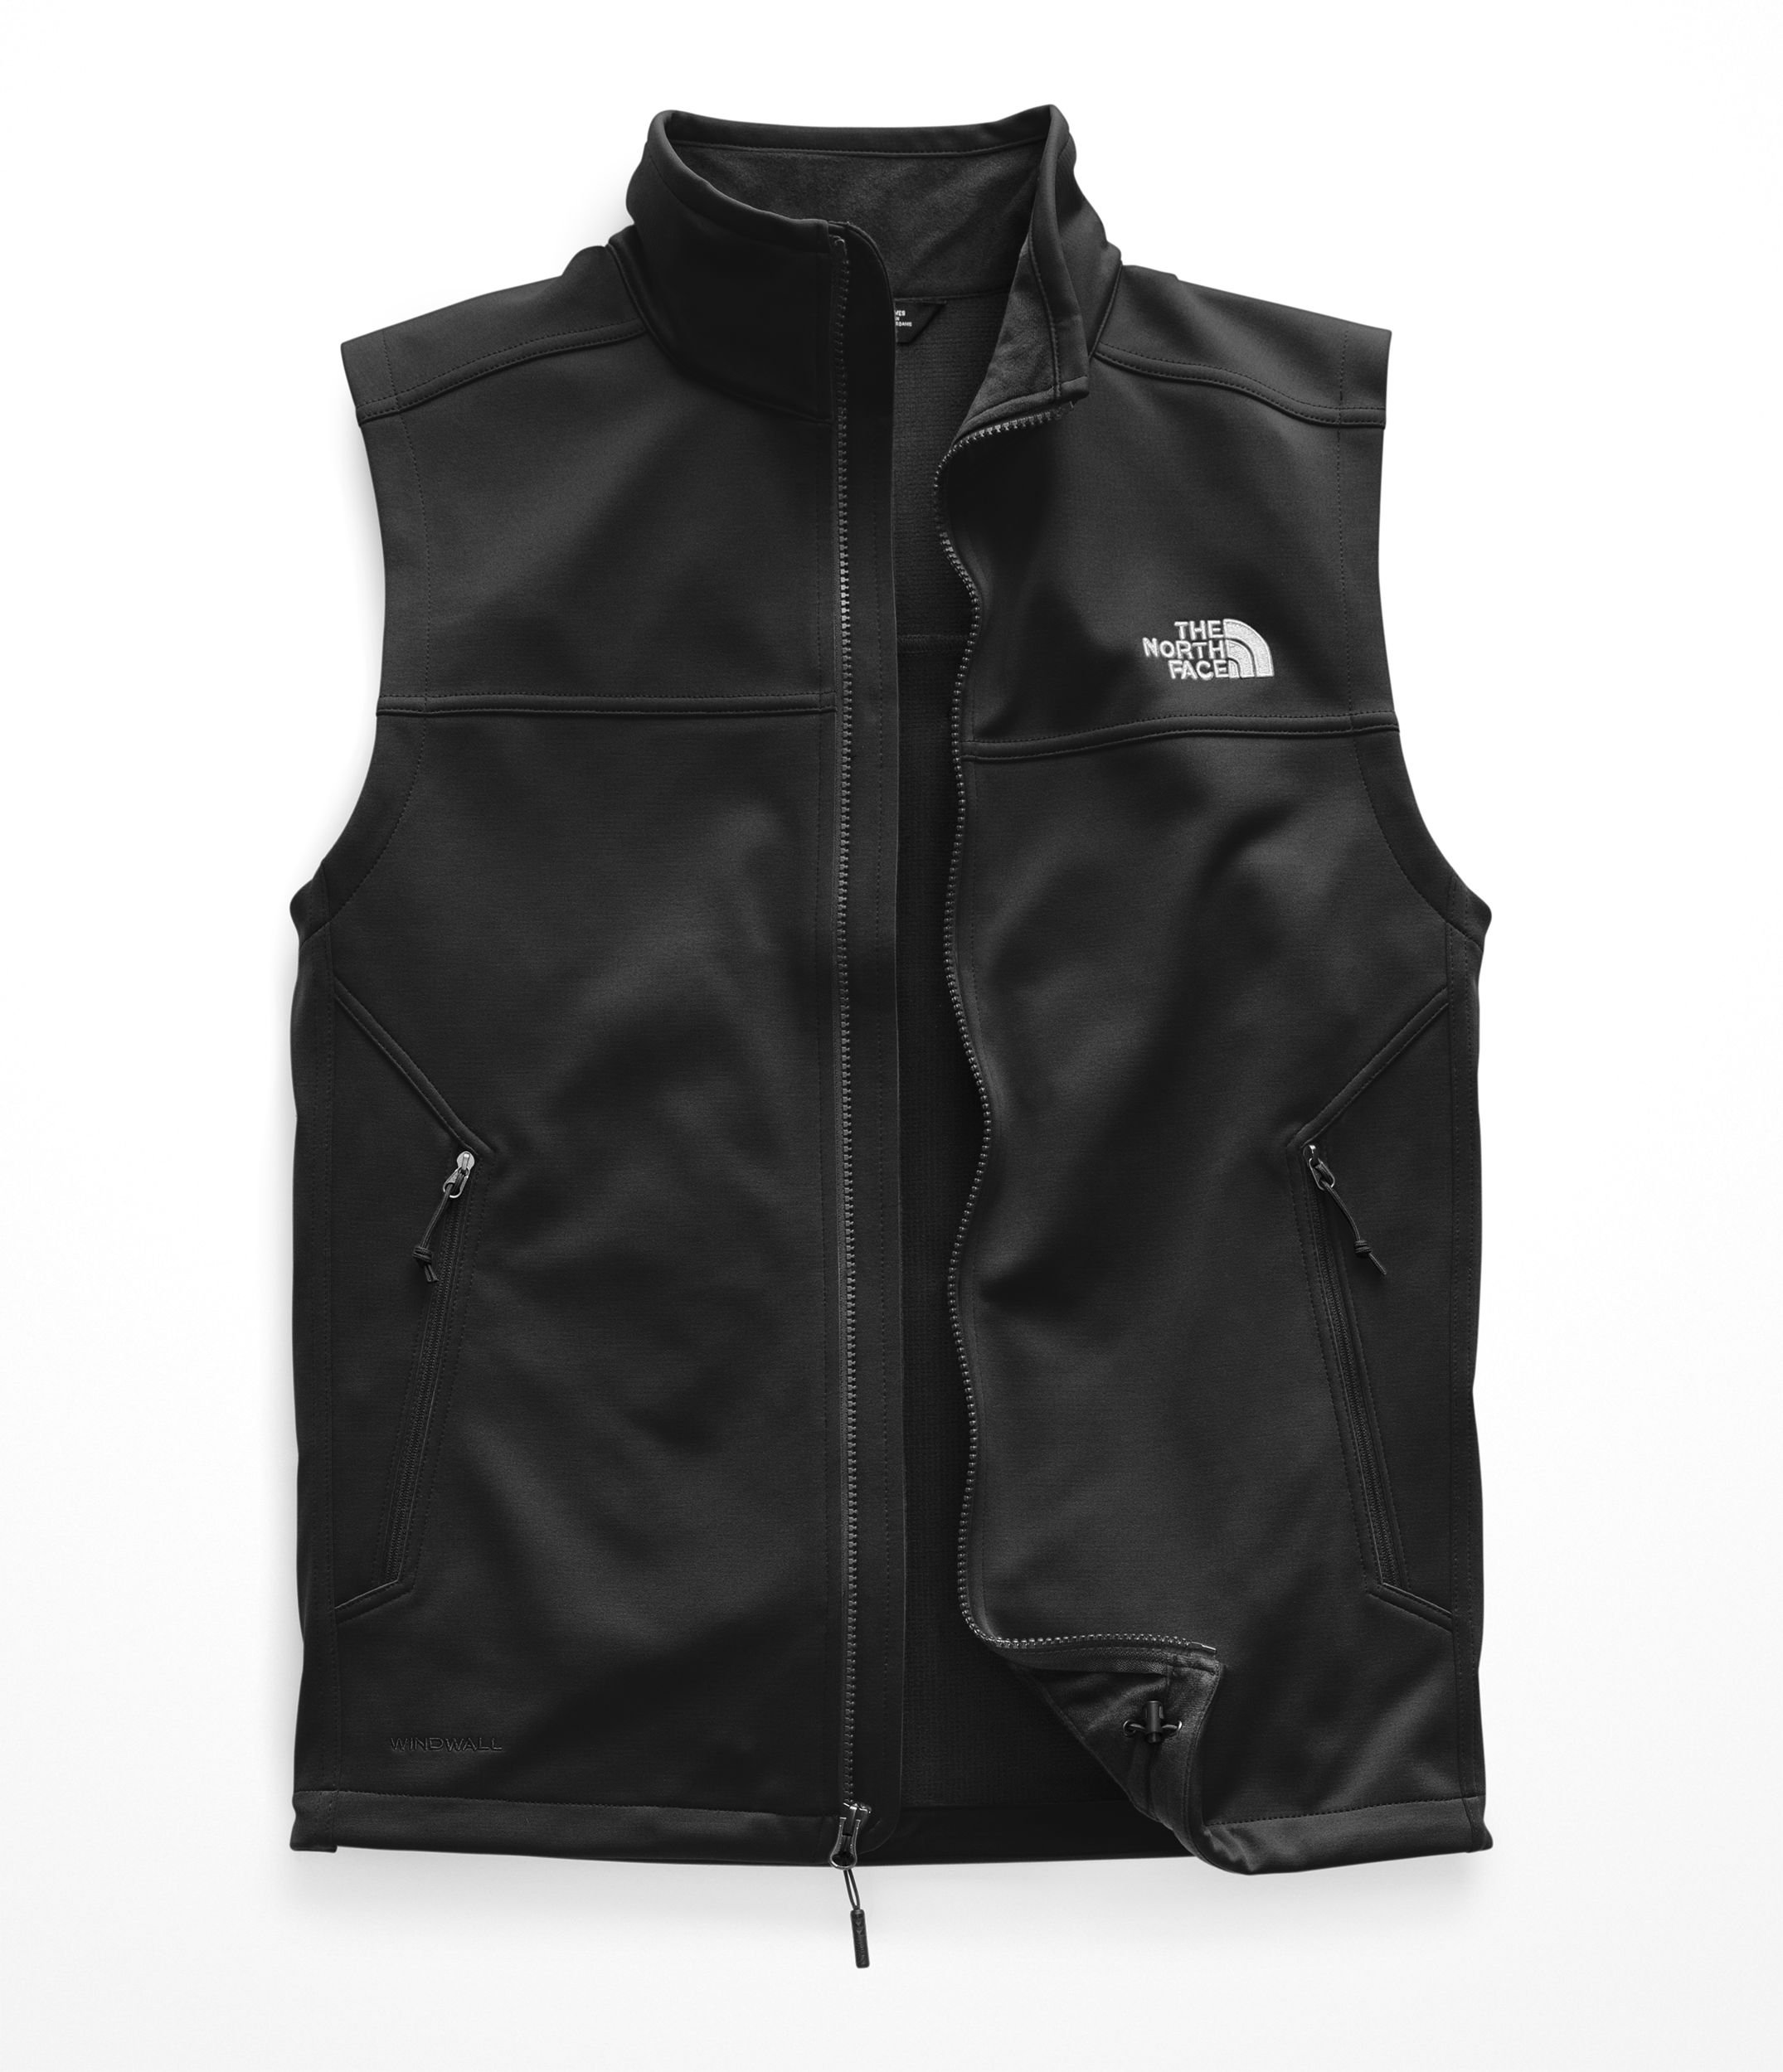 The North Face Men's Apex Canyonwall Vest - TNF Black & TNF Black - S by The North Face